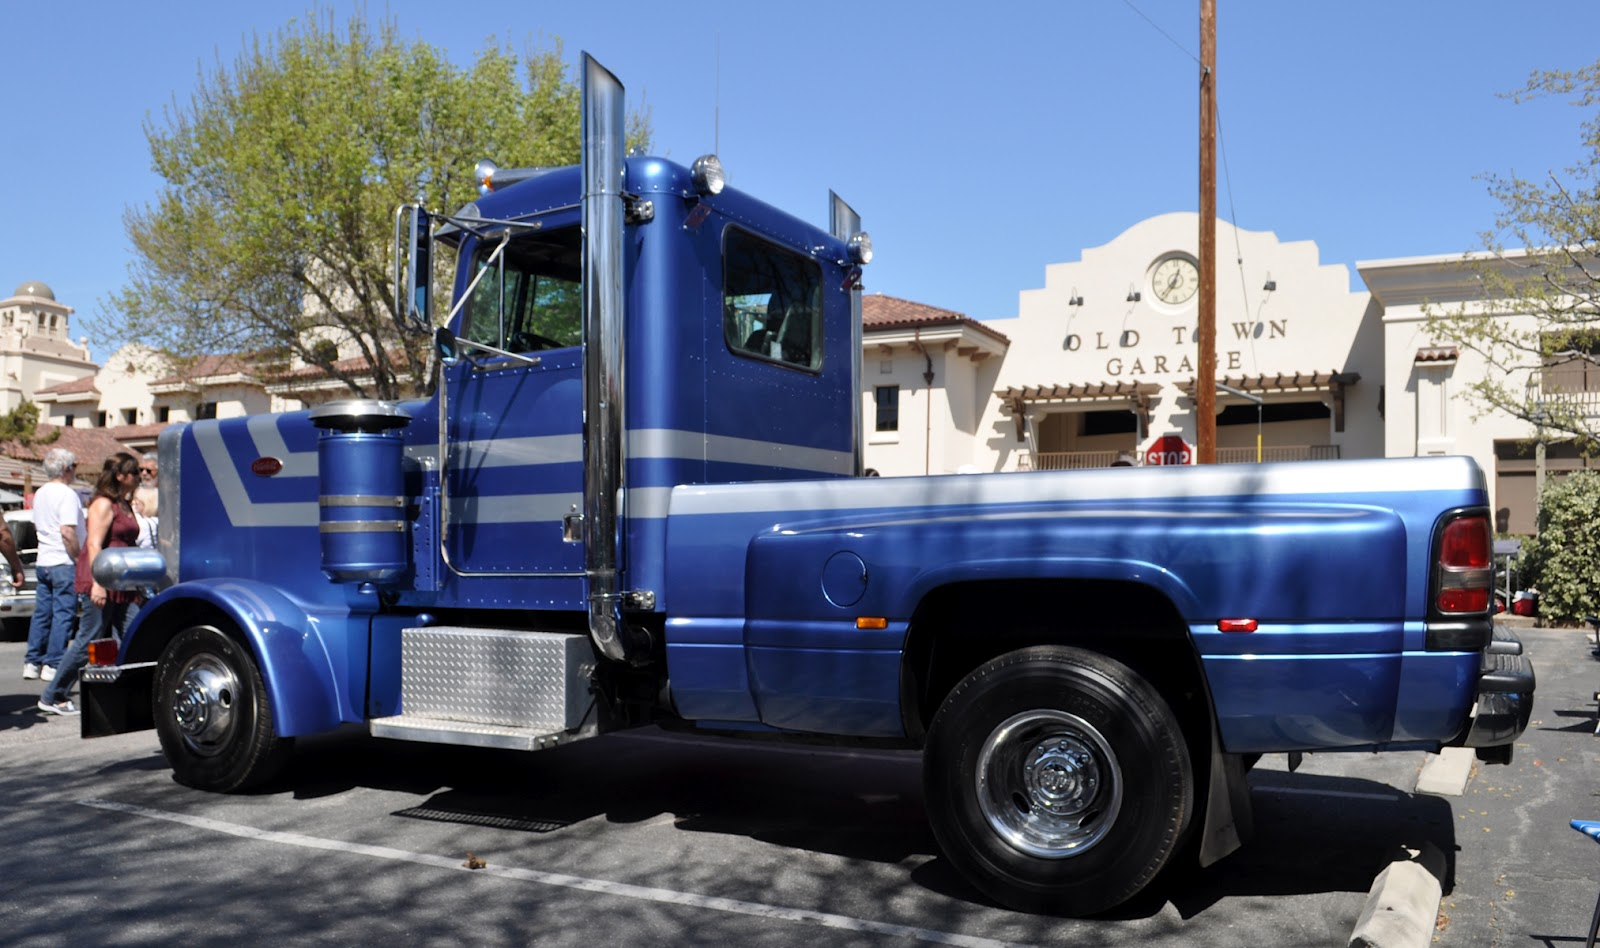 3 1 z rig diagram 1986 harley sportster wiring classic cars authority: here is an unusual rig, a kenworth cab and hood with dodge pickup bed ...